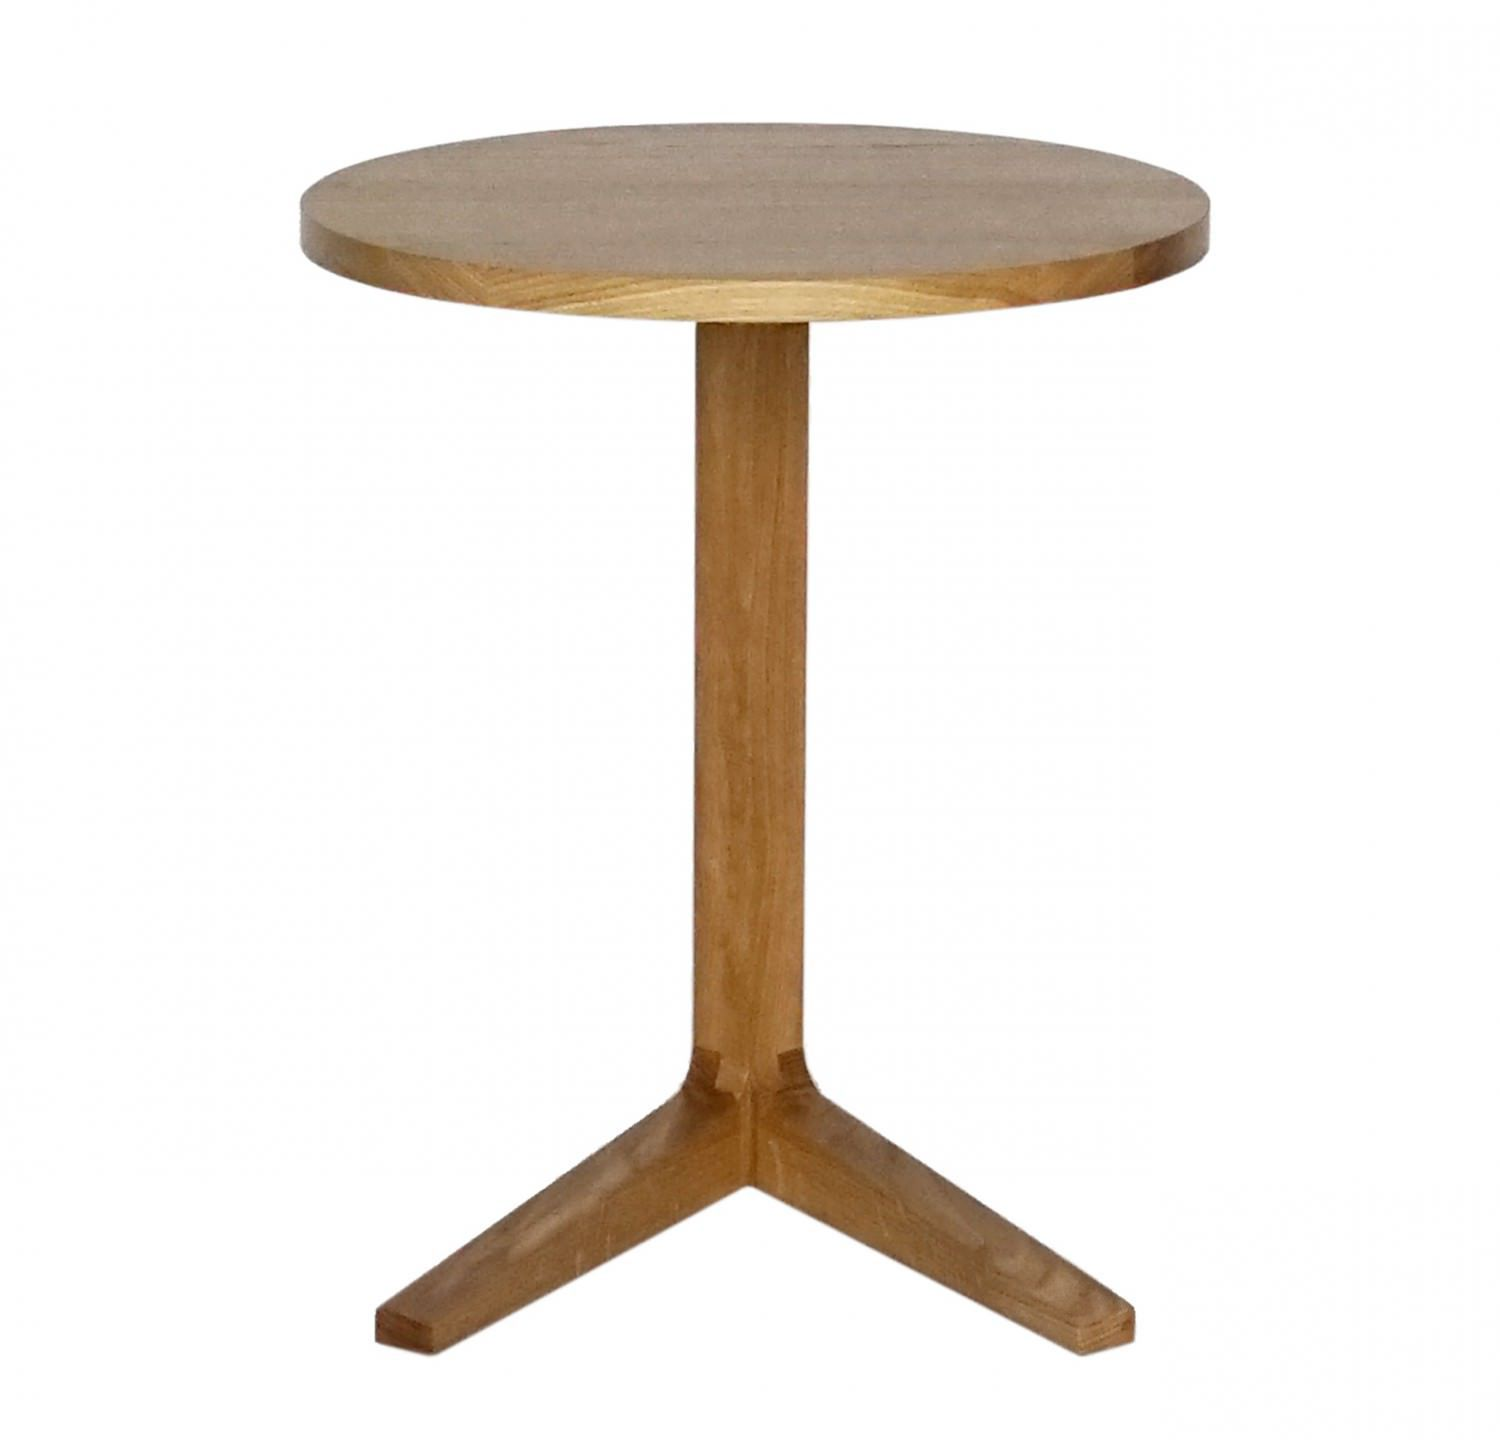 Contemporary side table wooden round CROSS by Matthew Hilton